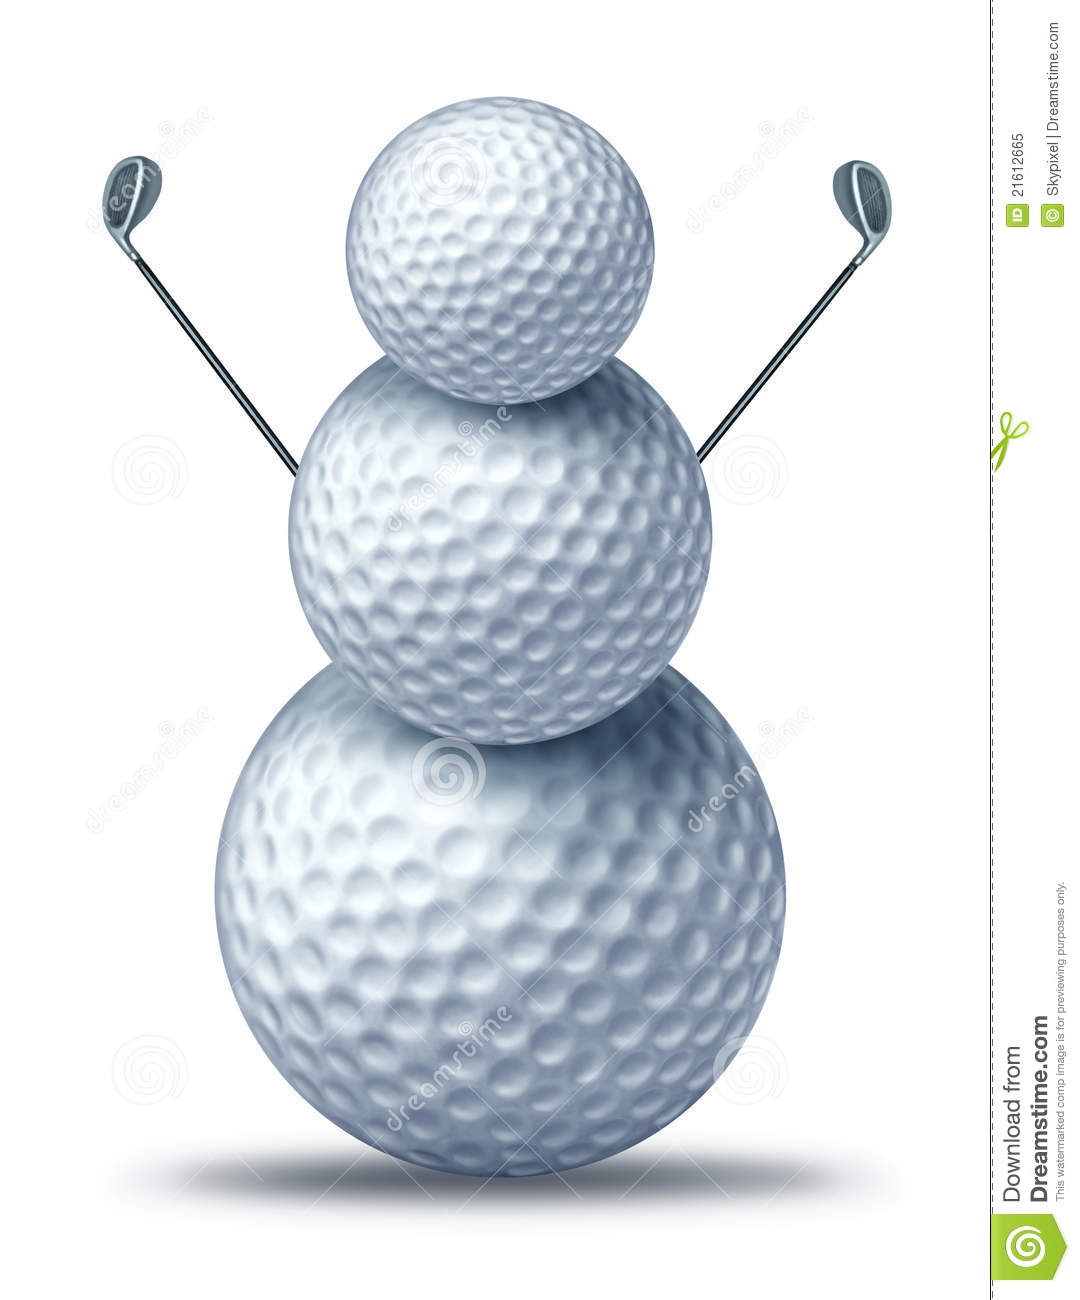 winter golf royalty free stock photo image 21612665 golfer clip art microsoft 2010 gopher clipart